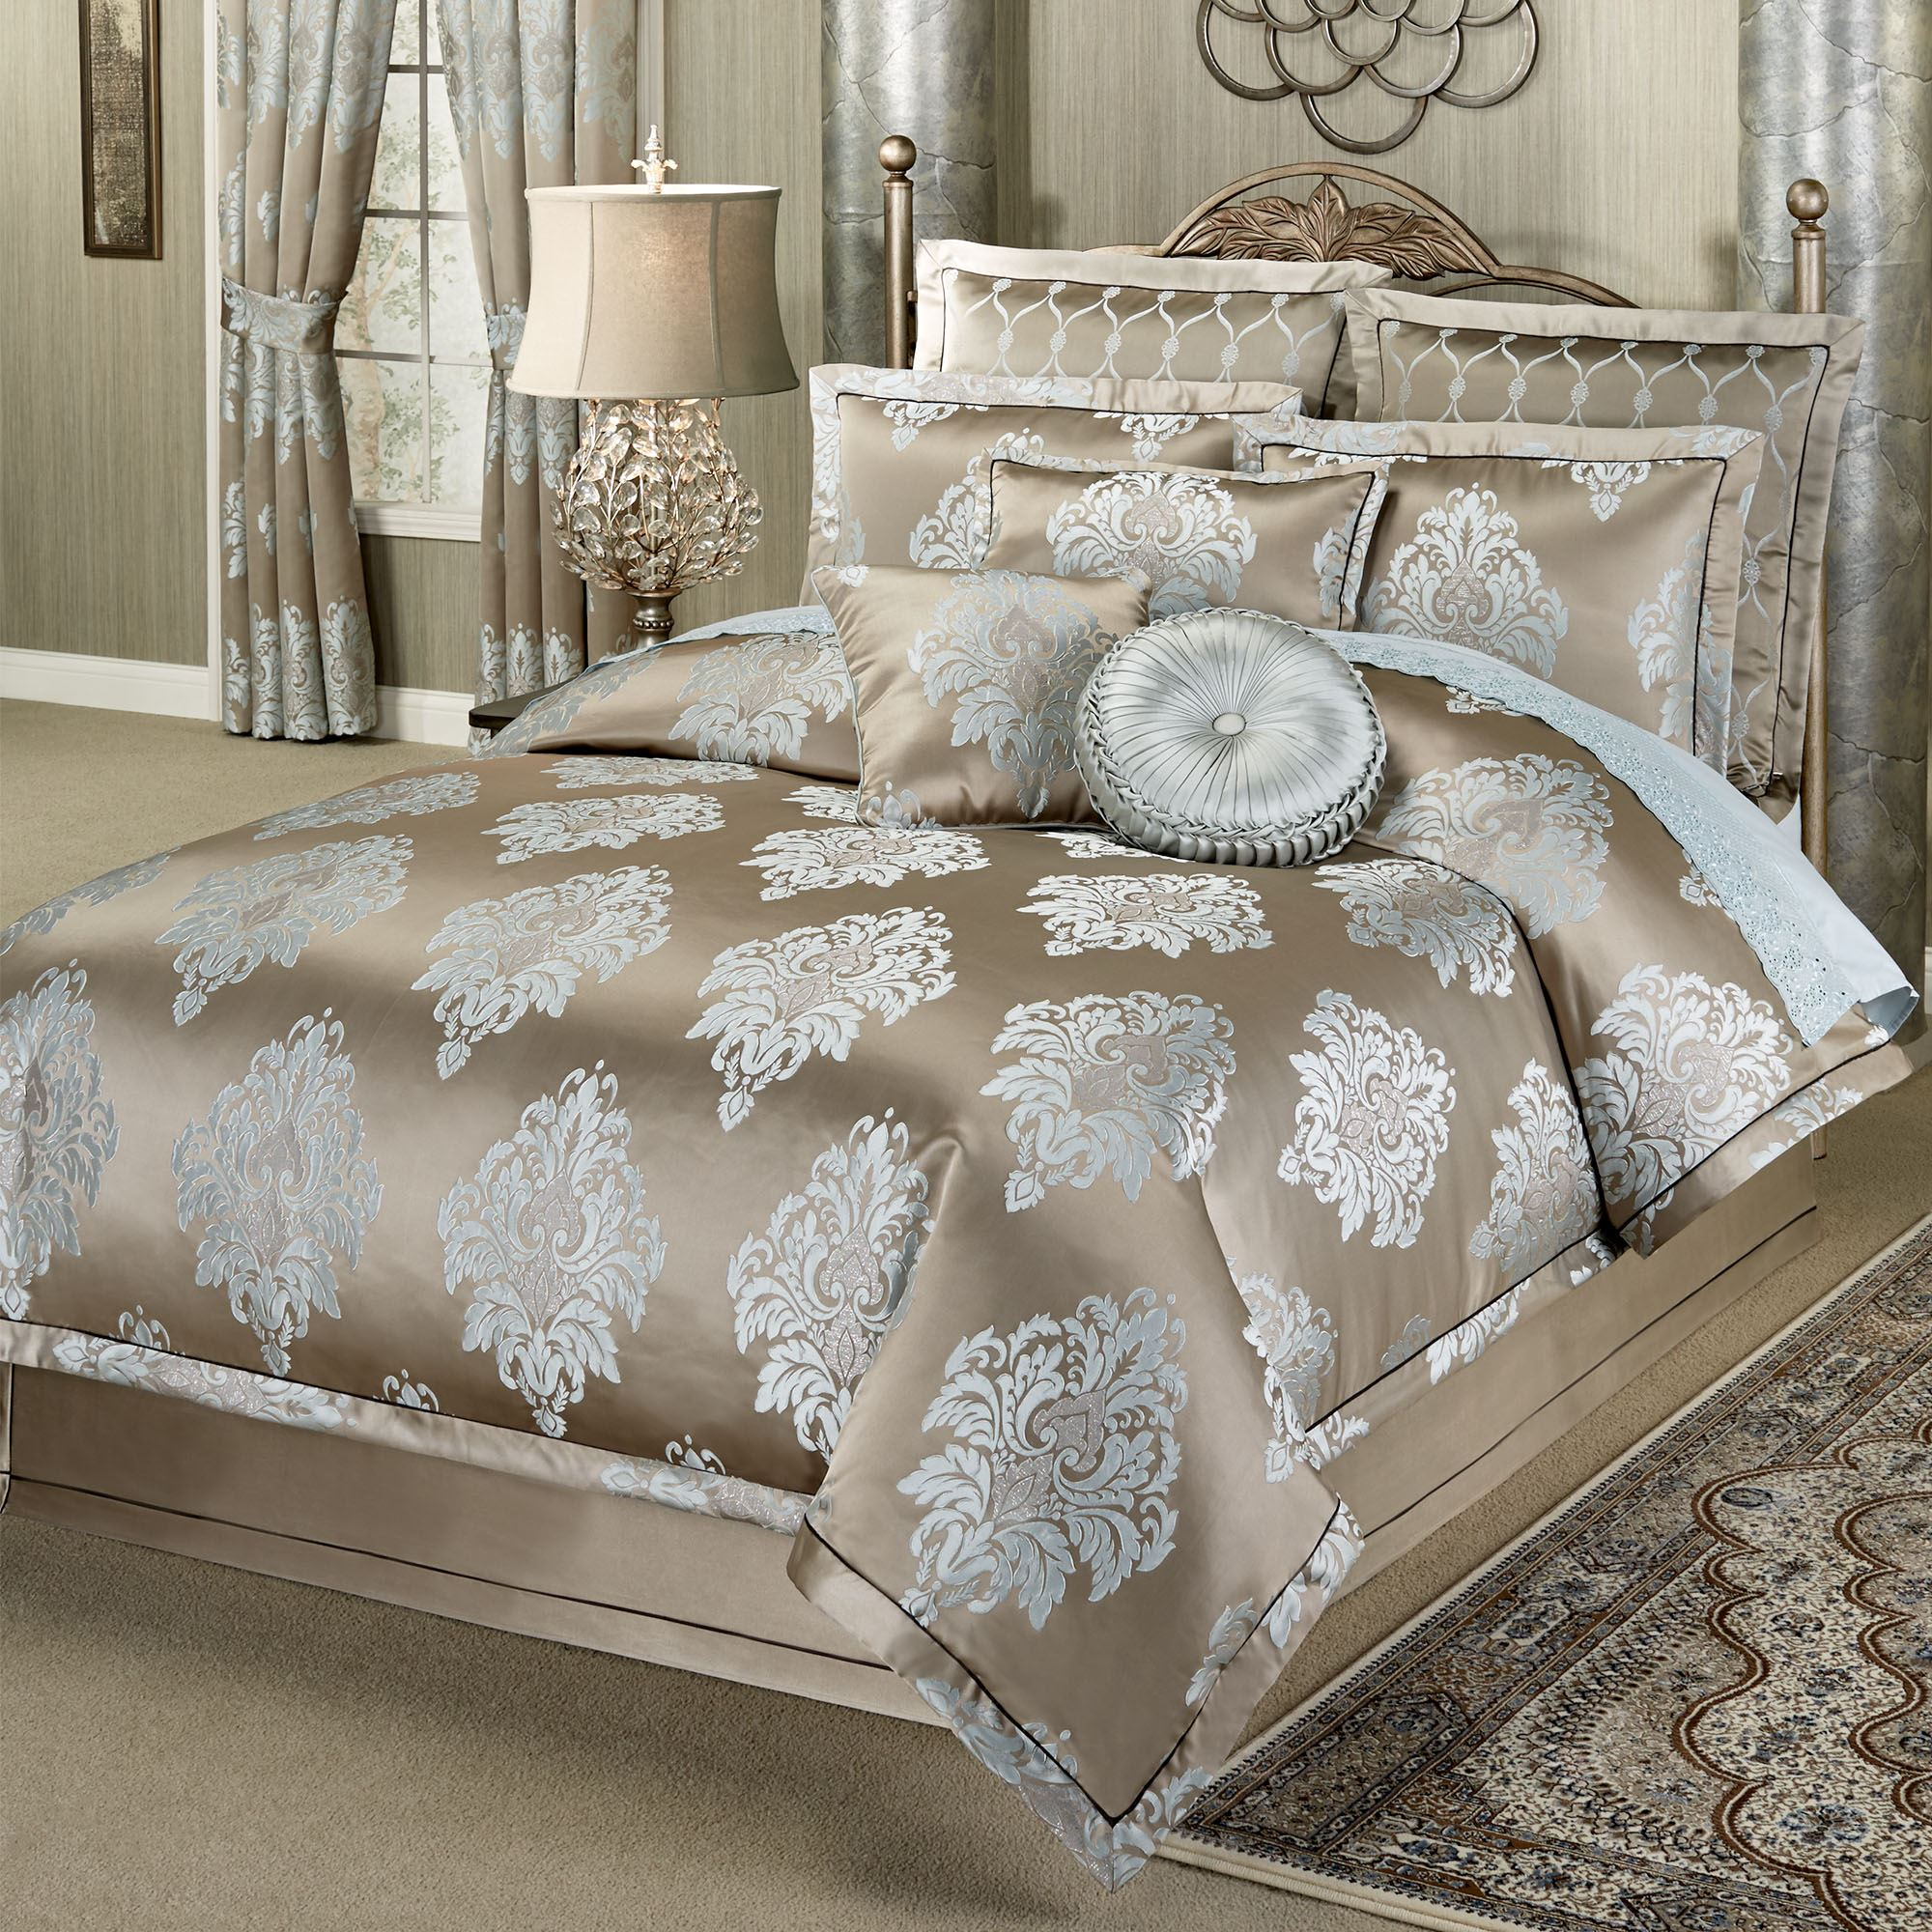 flanged with edges blue navy magnificent comforter europe beige upholstery pieced originalviews leather tone taupe sets color together crytal indiana shams headboard two tufting pillow twin embroidered queen